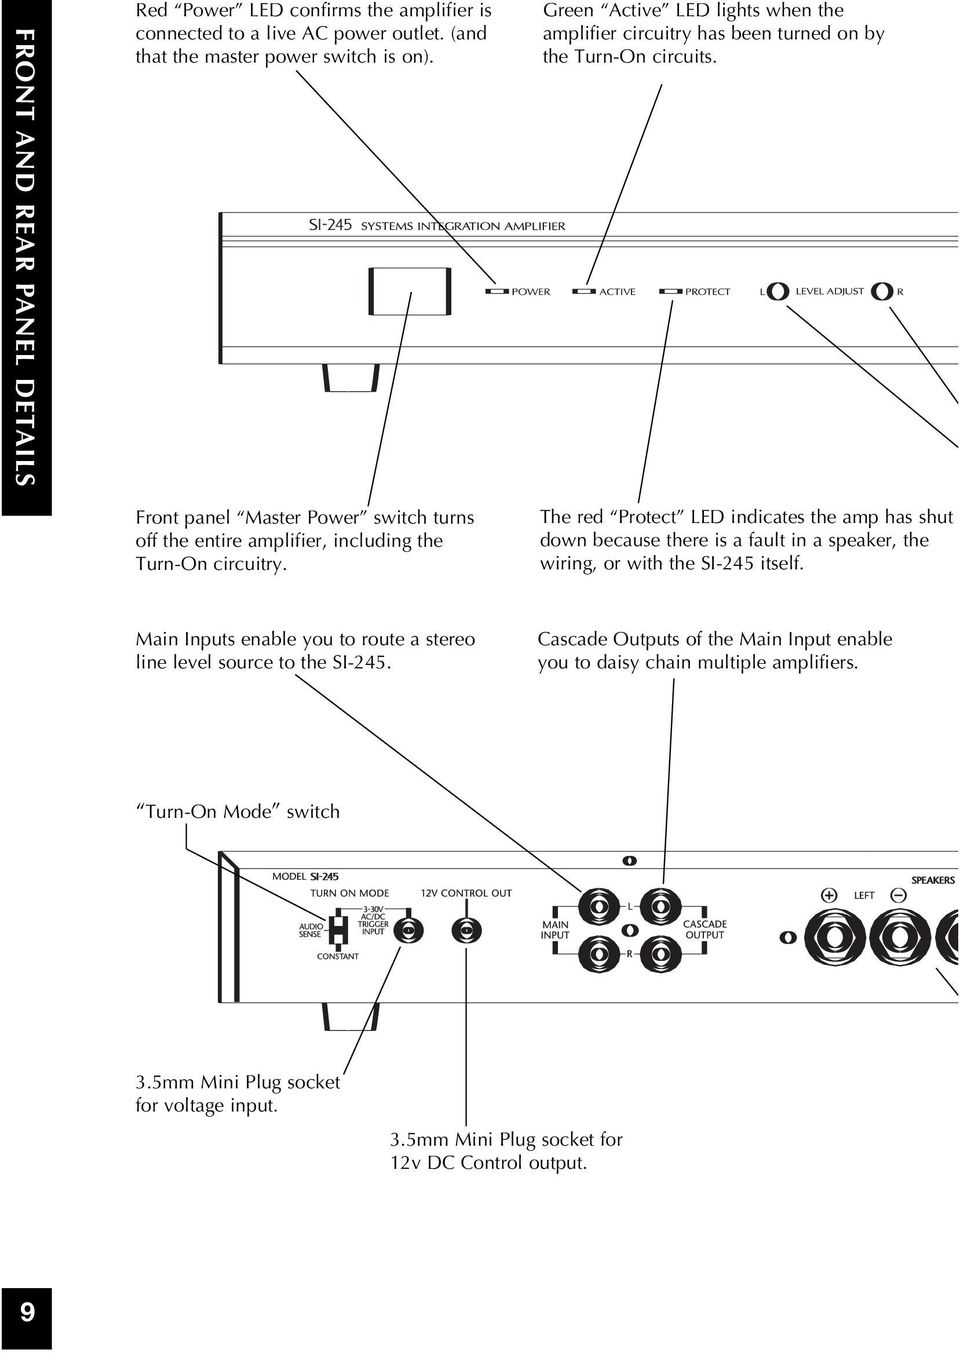 Installation Operation Guide Systems Integration Amplifier Pdf Daisy Chain Speakers Wiring Diagram Green Active Led Lights When The Circuitry Has Been Turned On By Turn